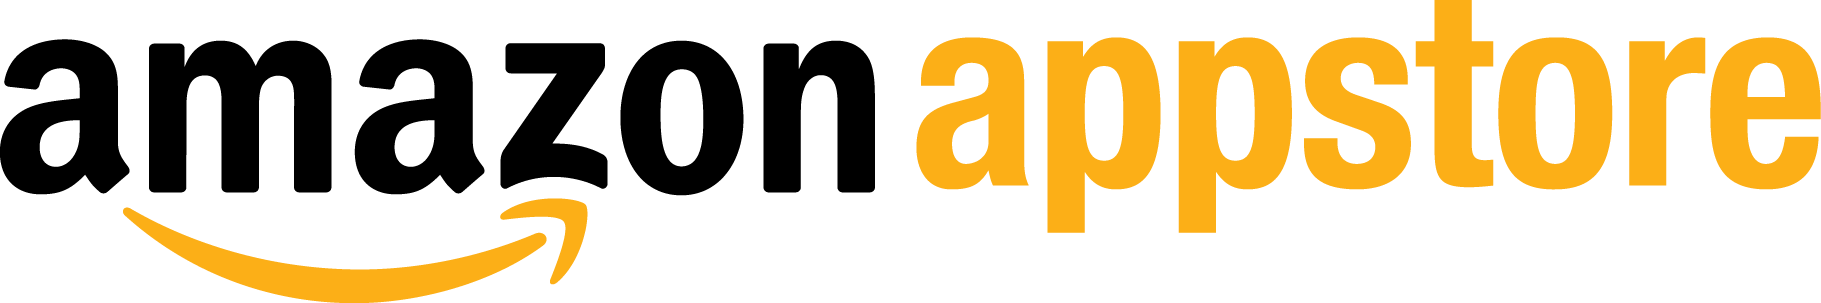 Amazon app store logo png. Get featured on appstore